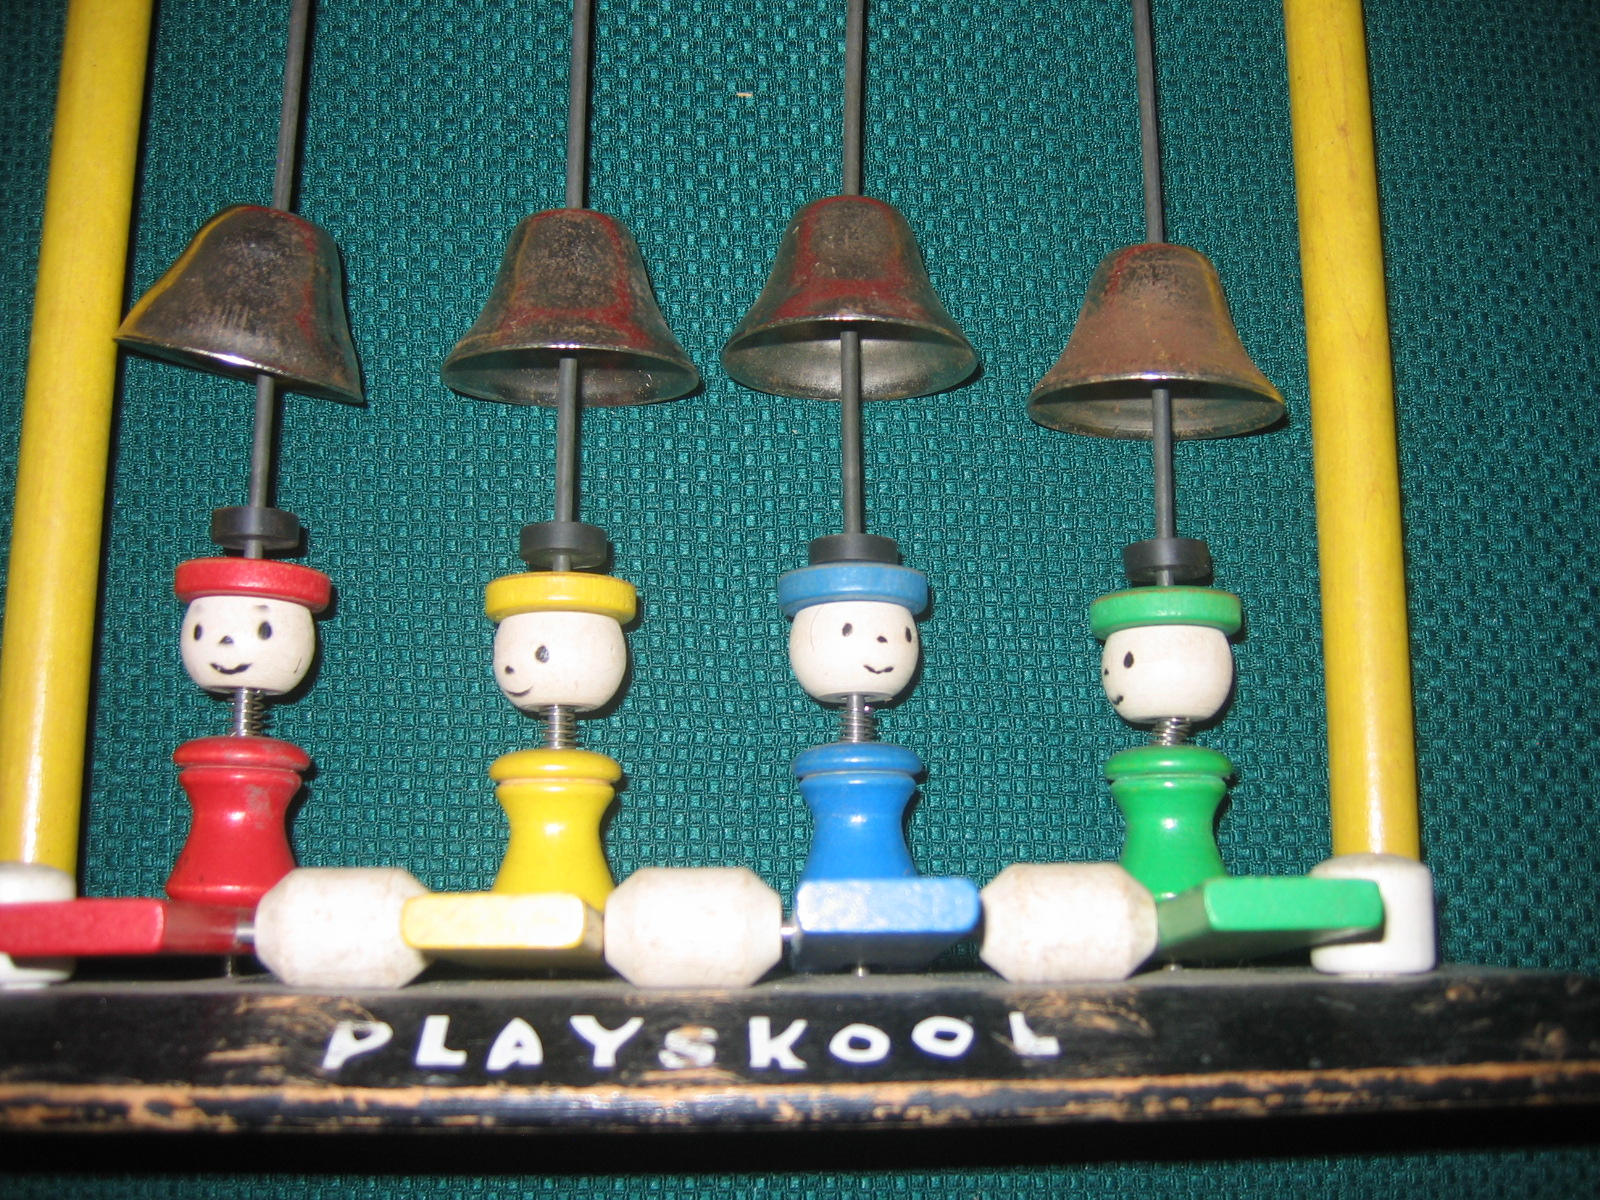 Playskool Musical Toys : Vintage playskool musical wooden mallet bell ringing item